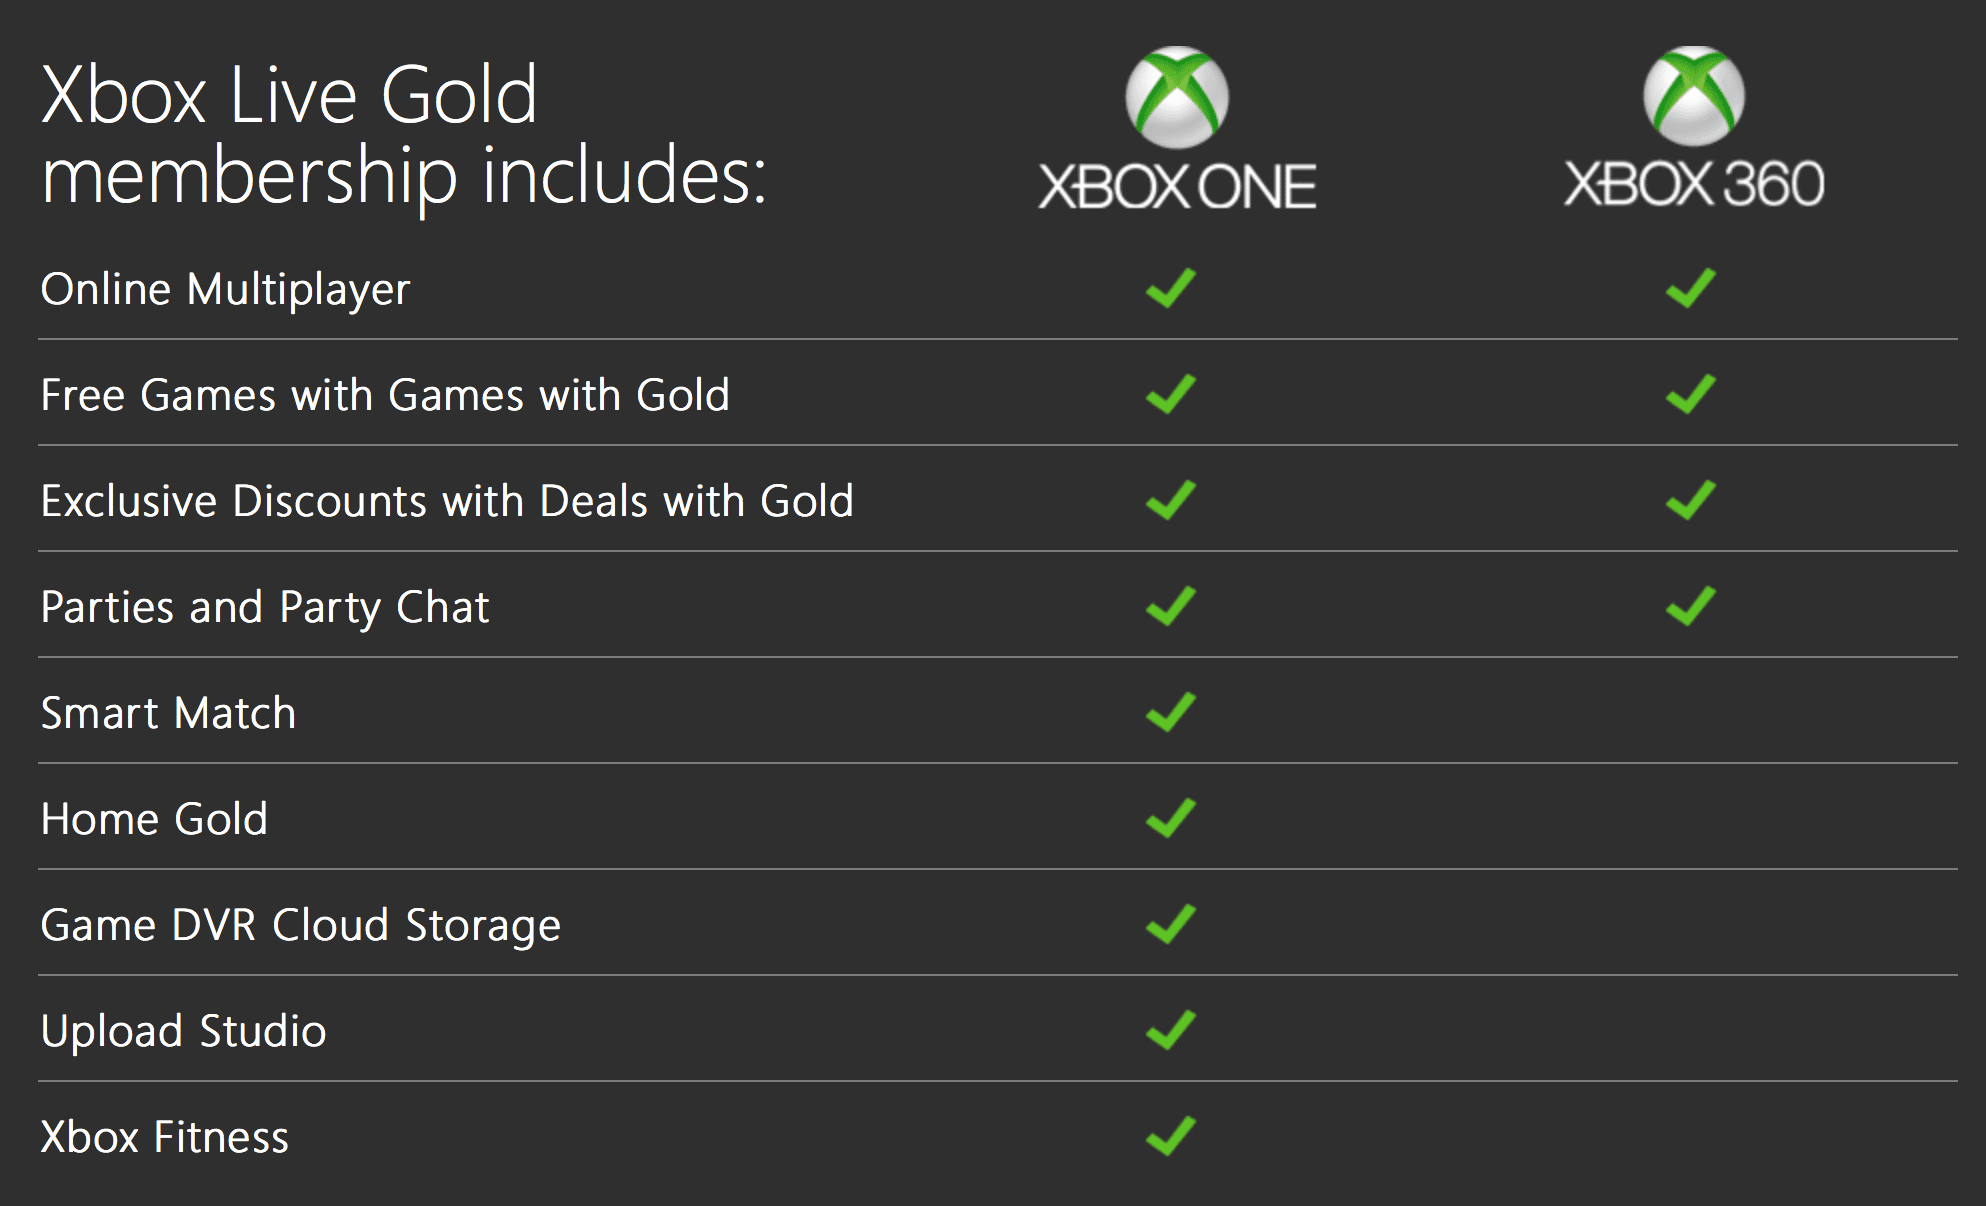 Do I need an Xbox game pass if I have Xbox Live Gold? - Quora